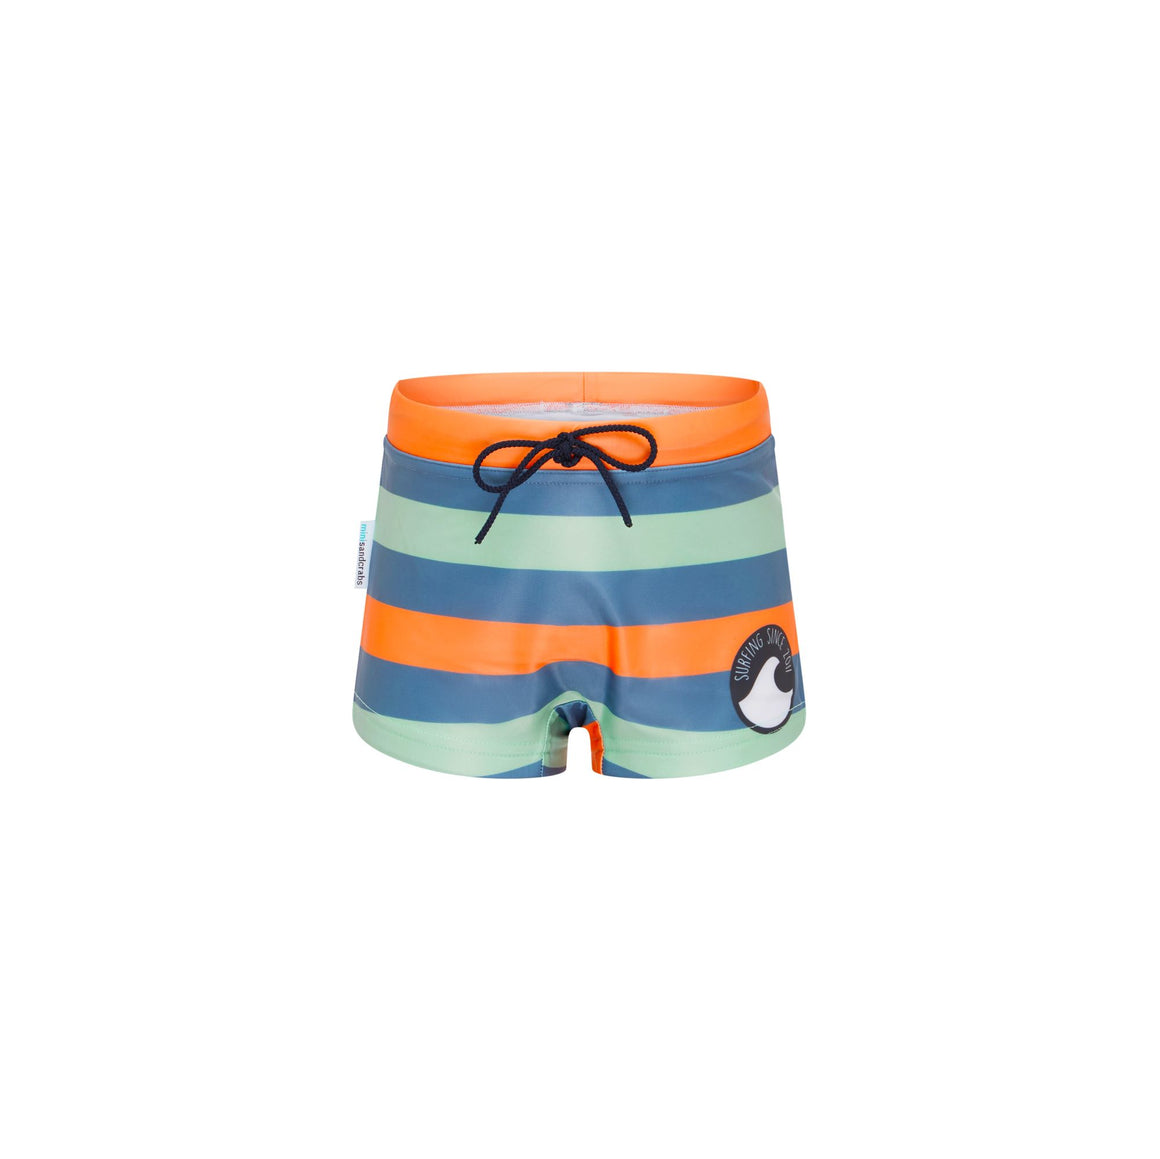 Euro Style Swimshorts - Boys Retro Vibes Junior